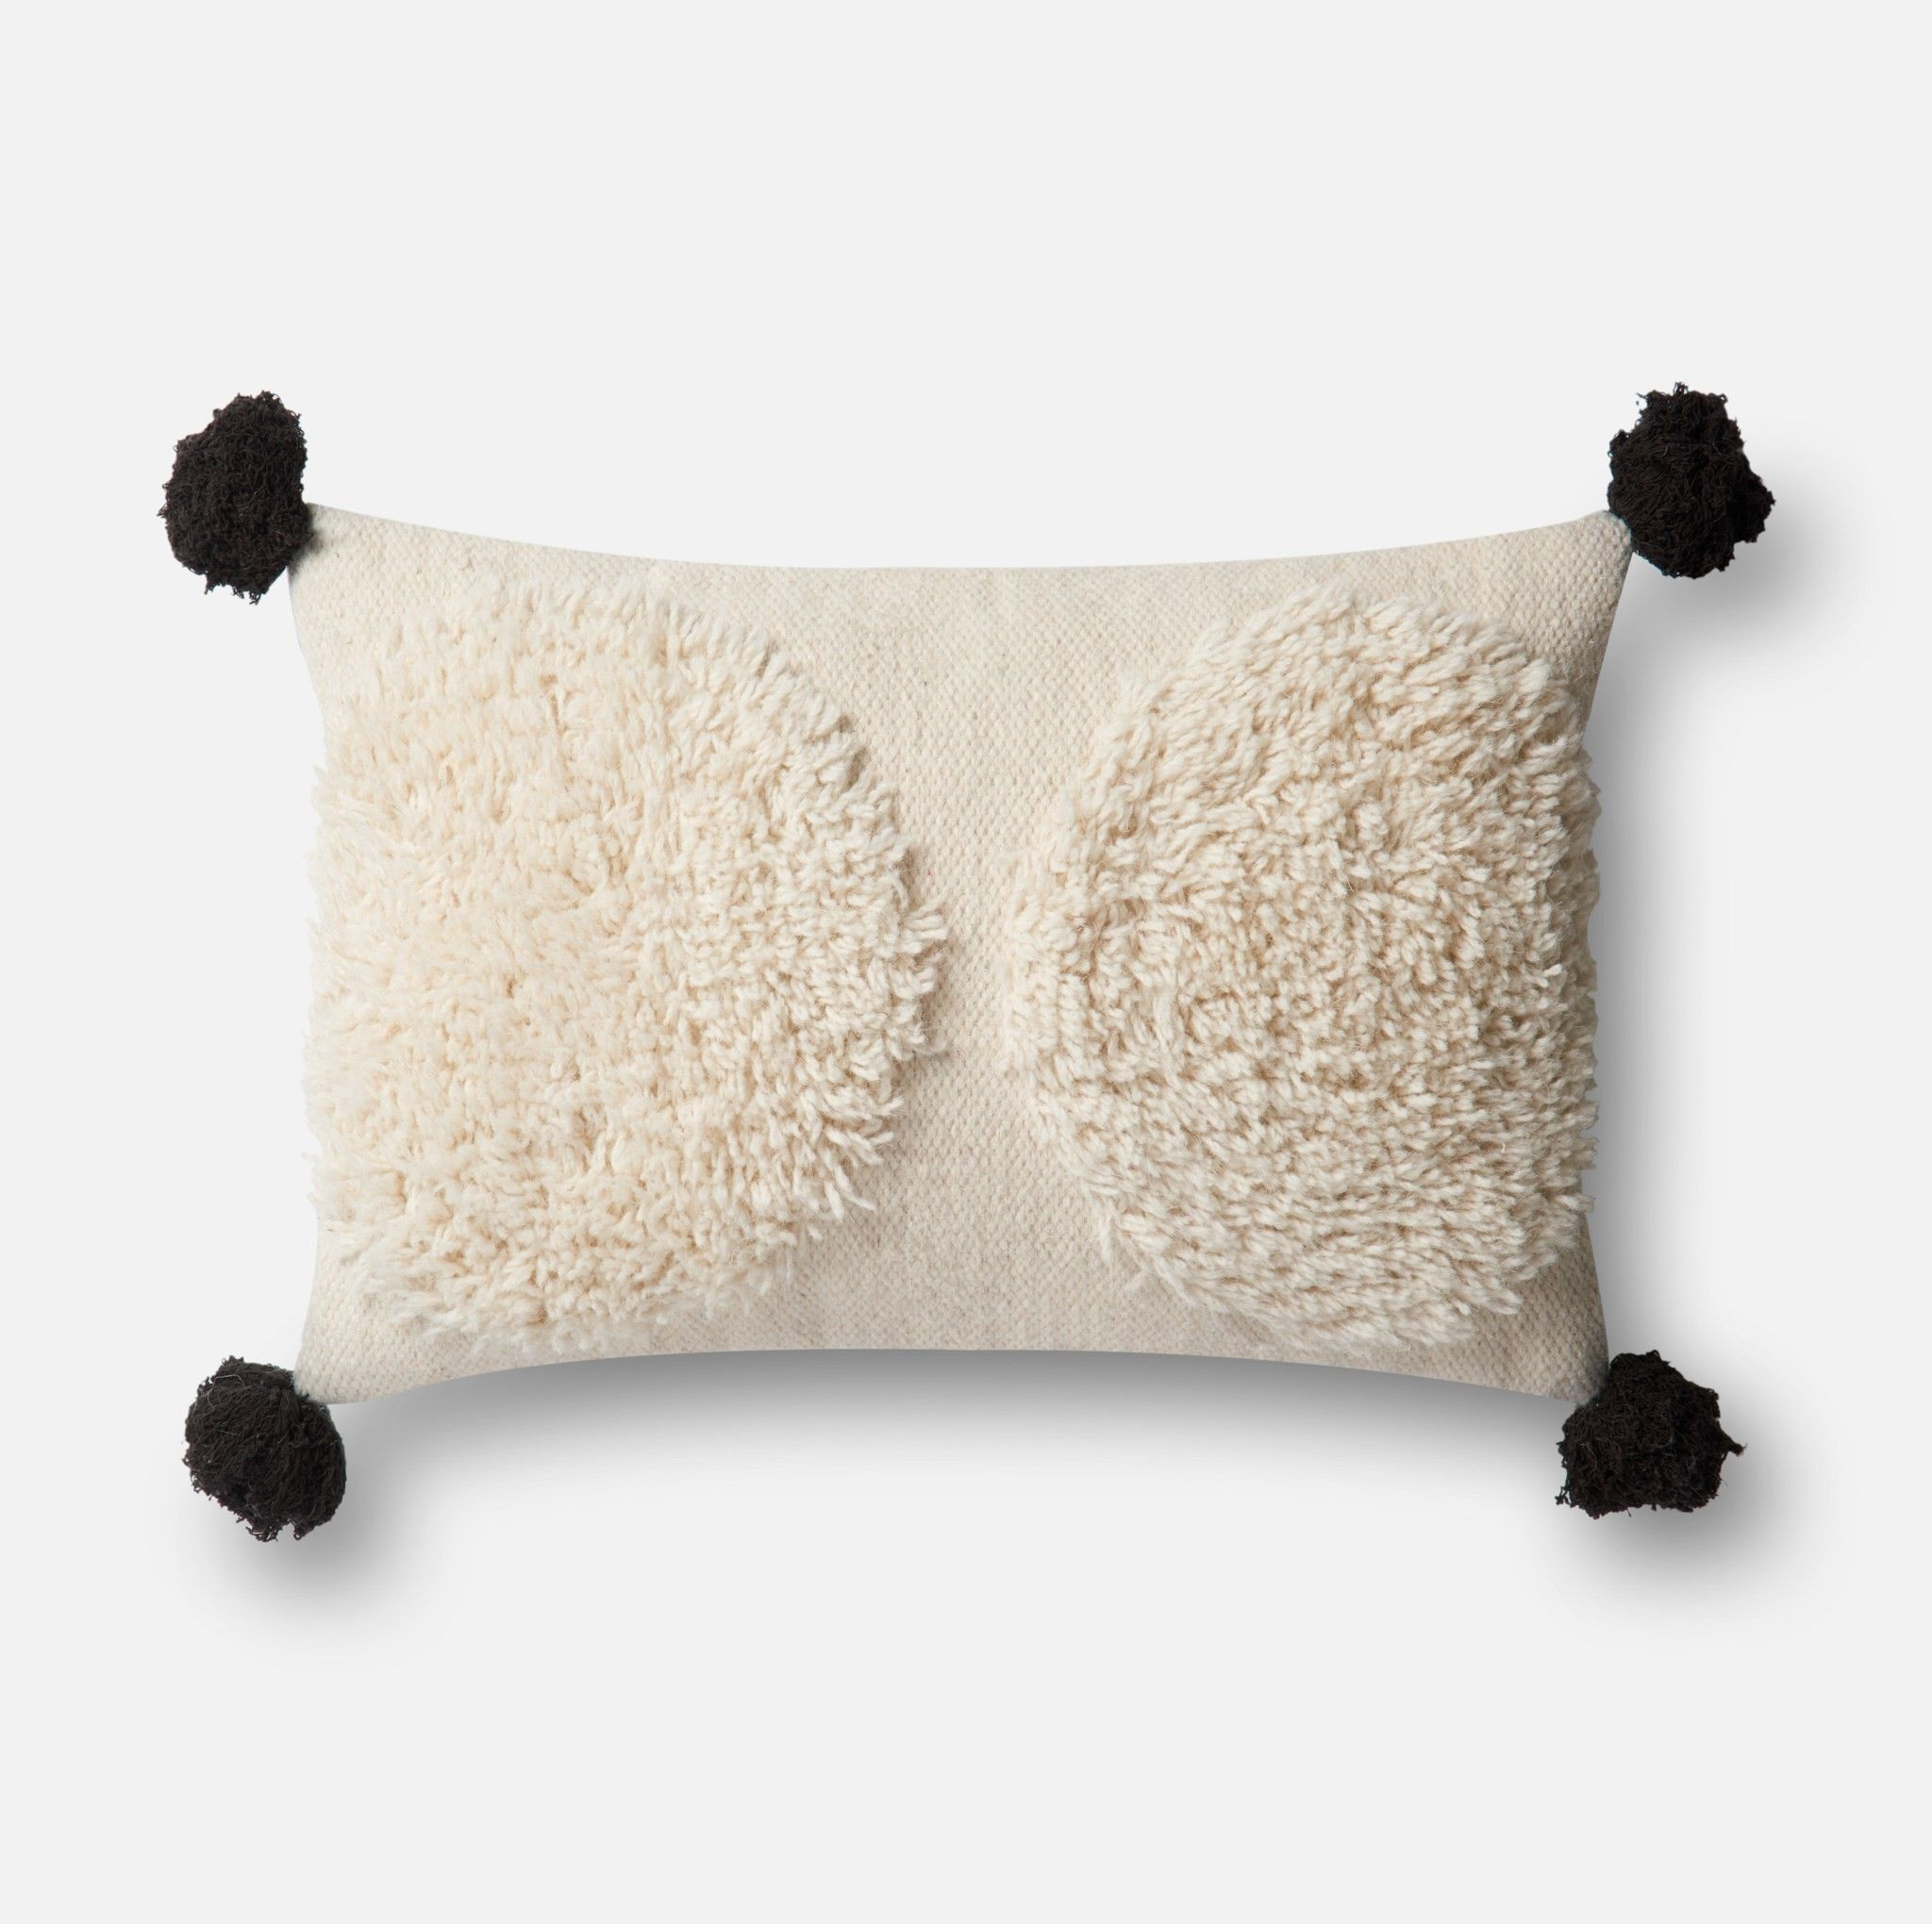 selling best bed casper pillows pillow